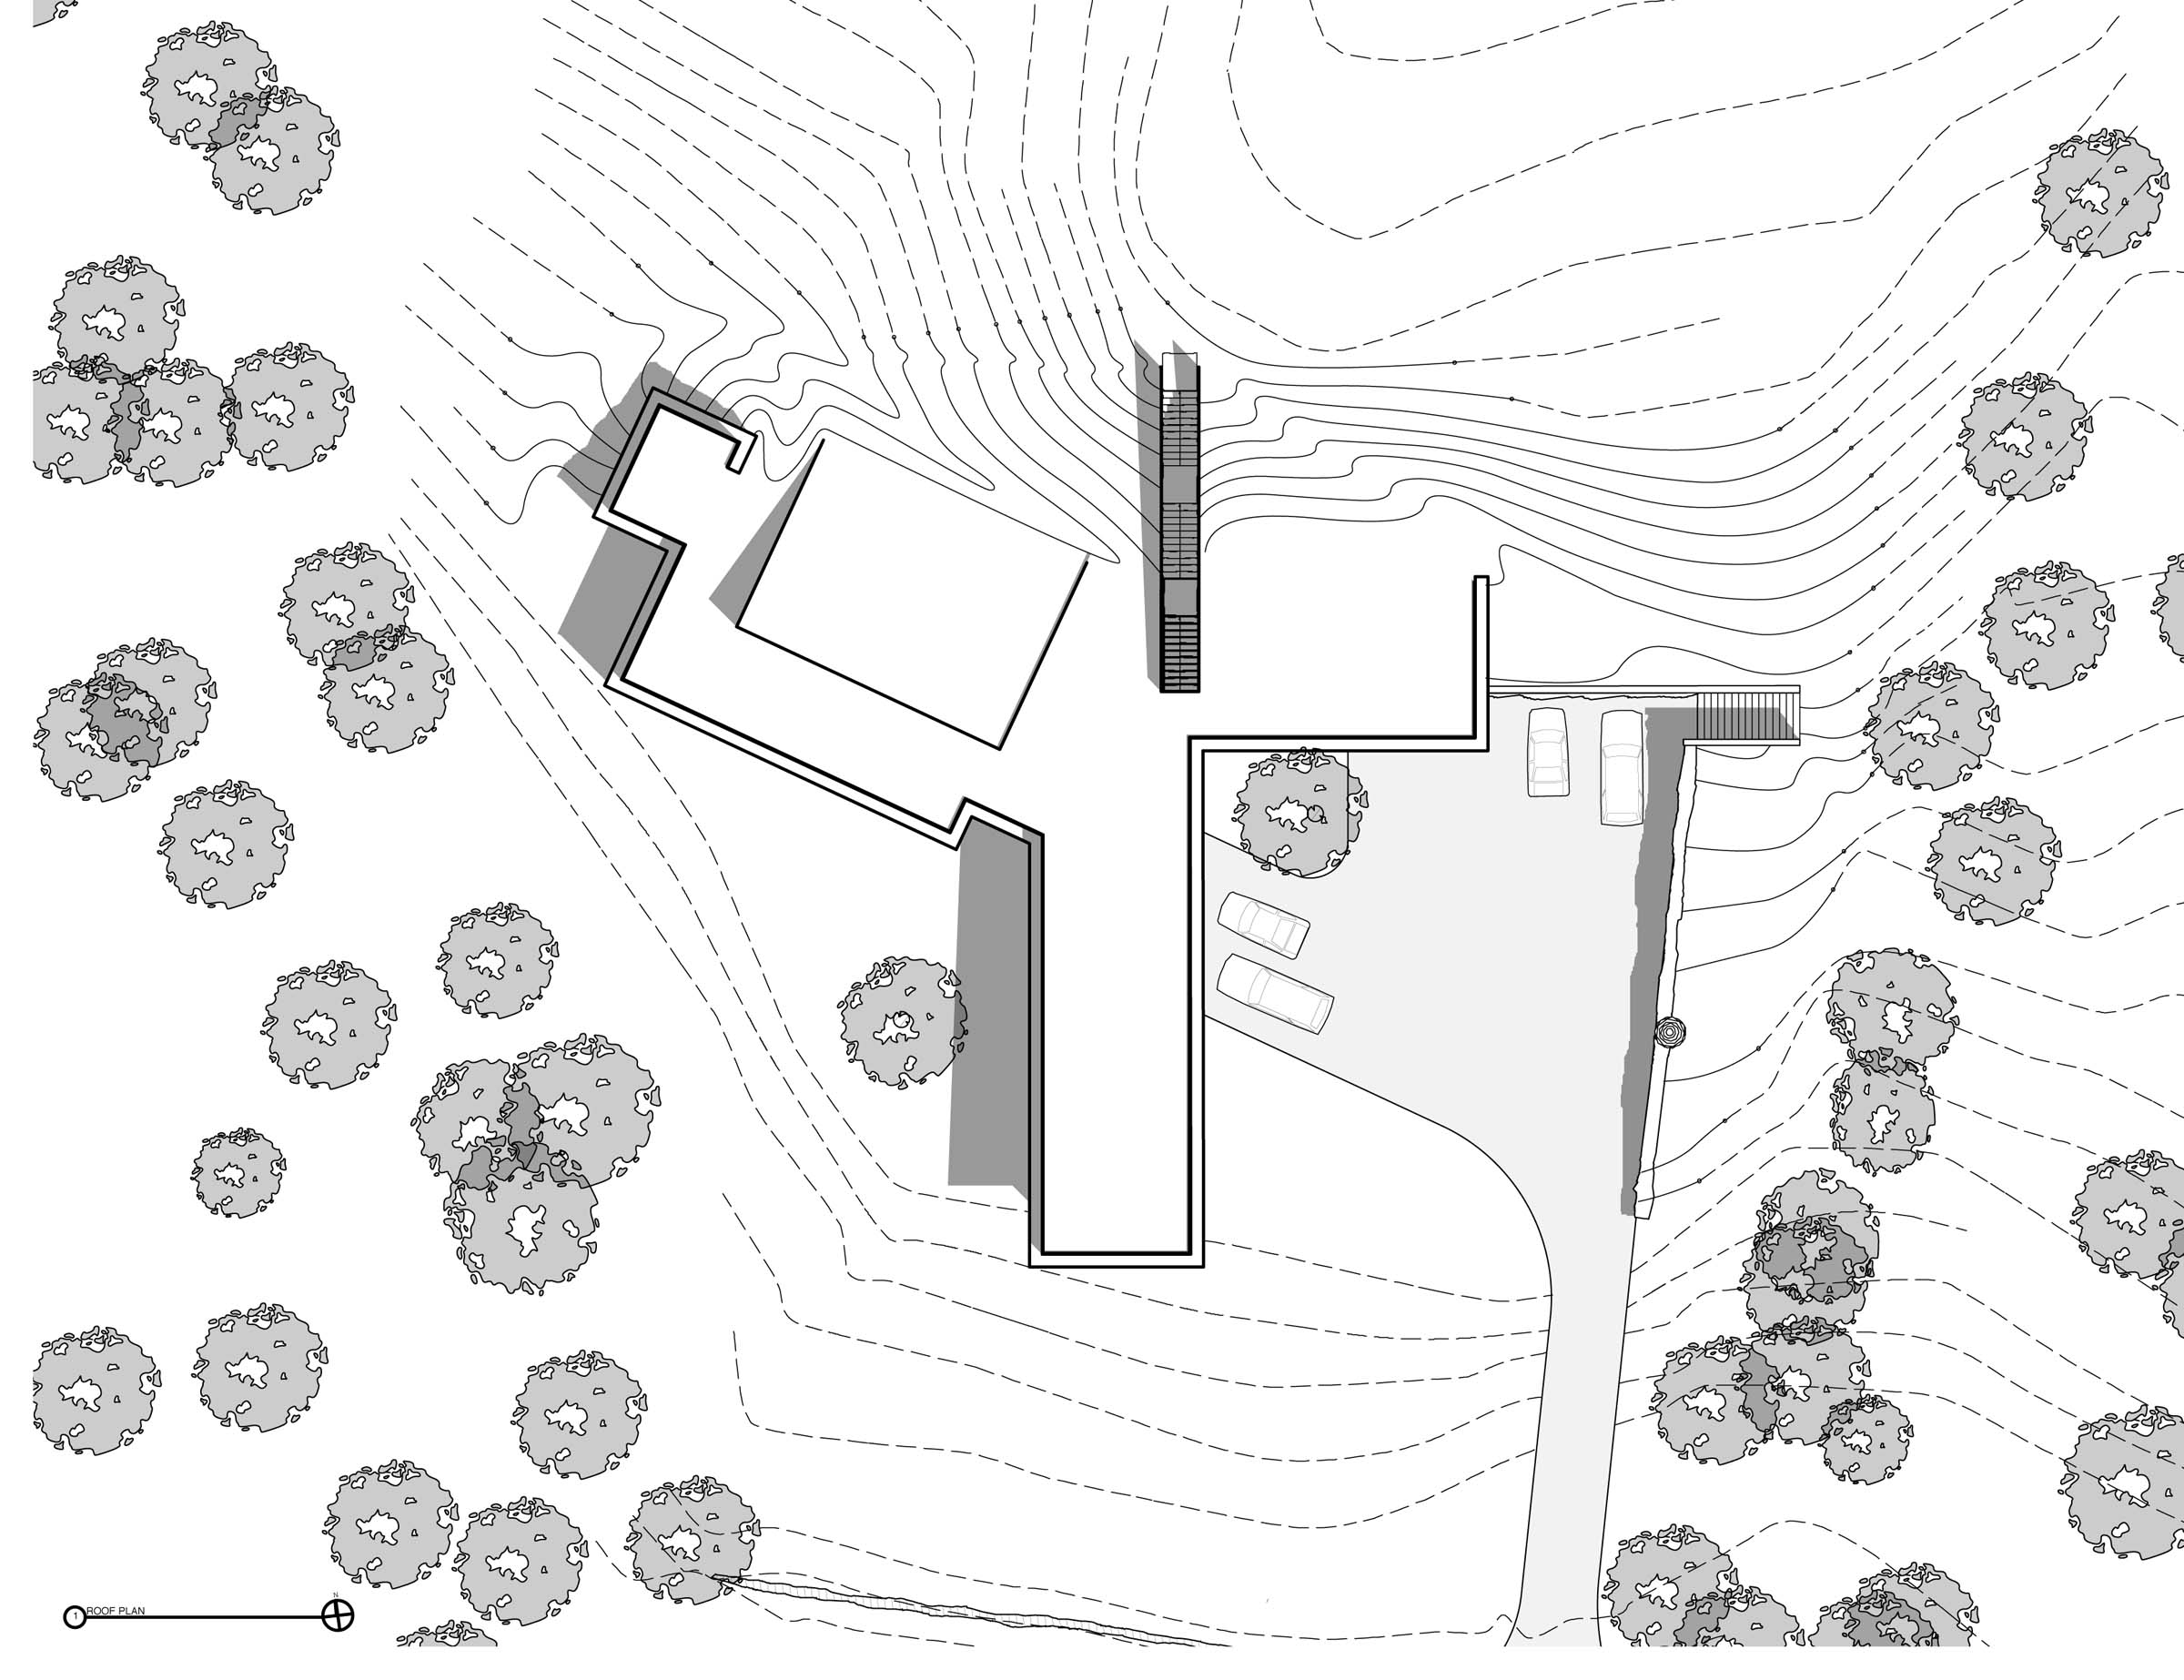 Guilford Artists' Residence - roof plan